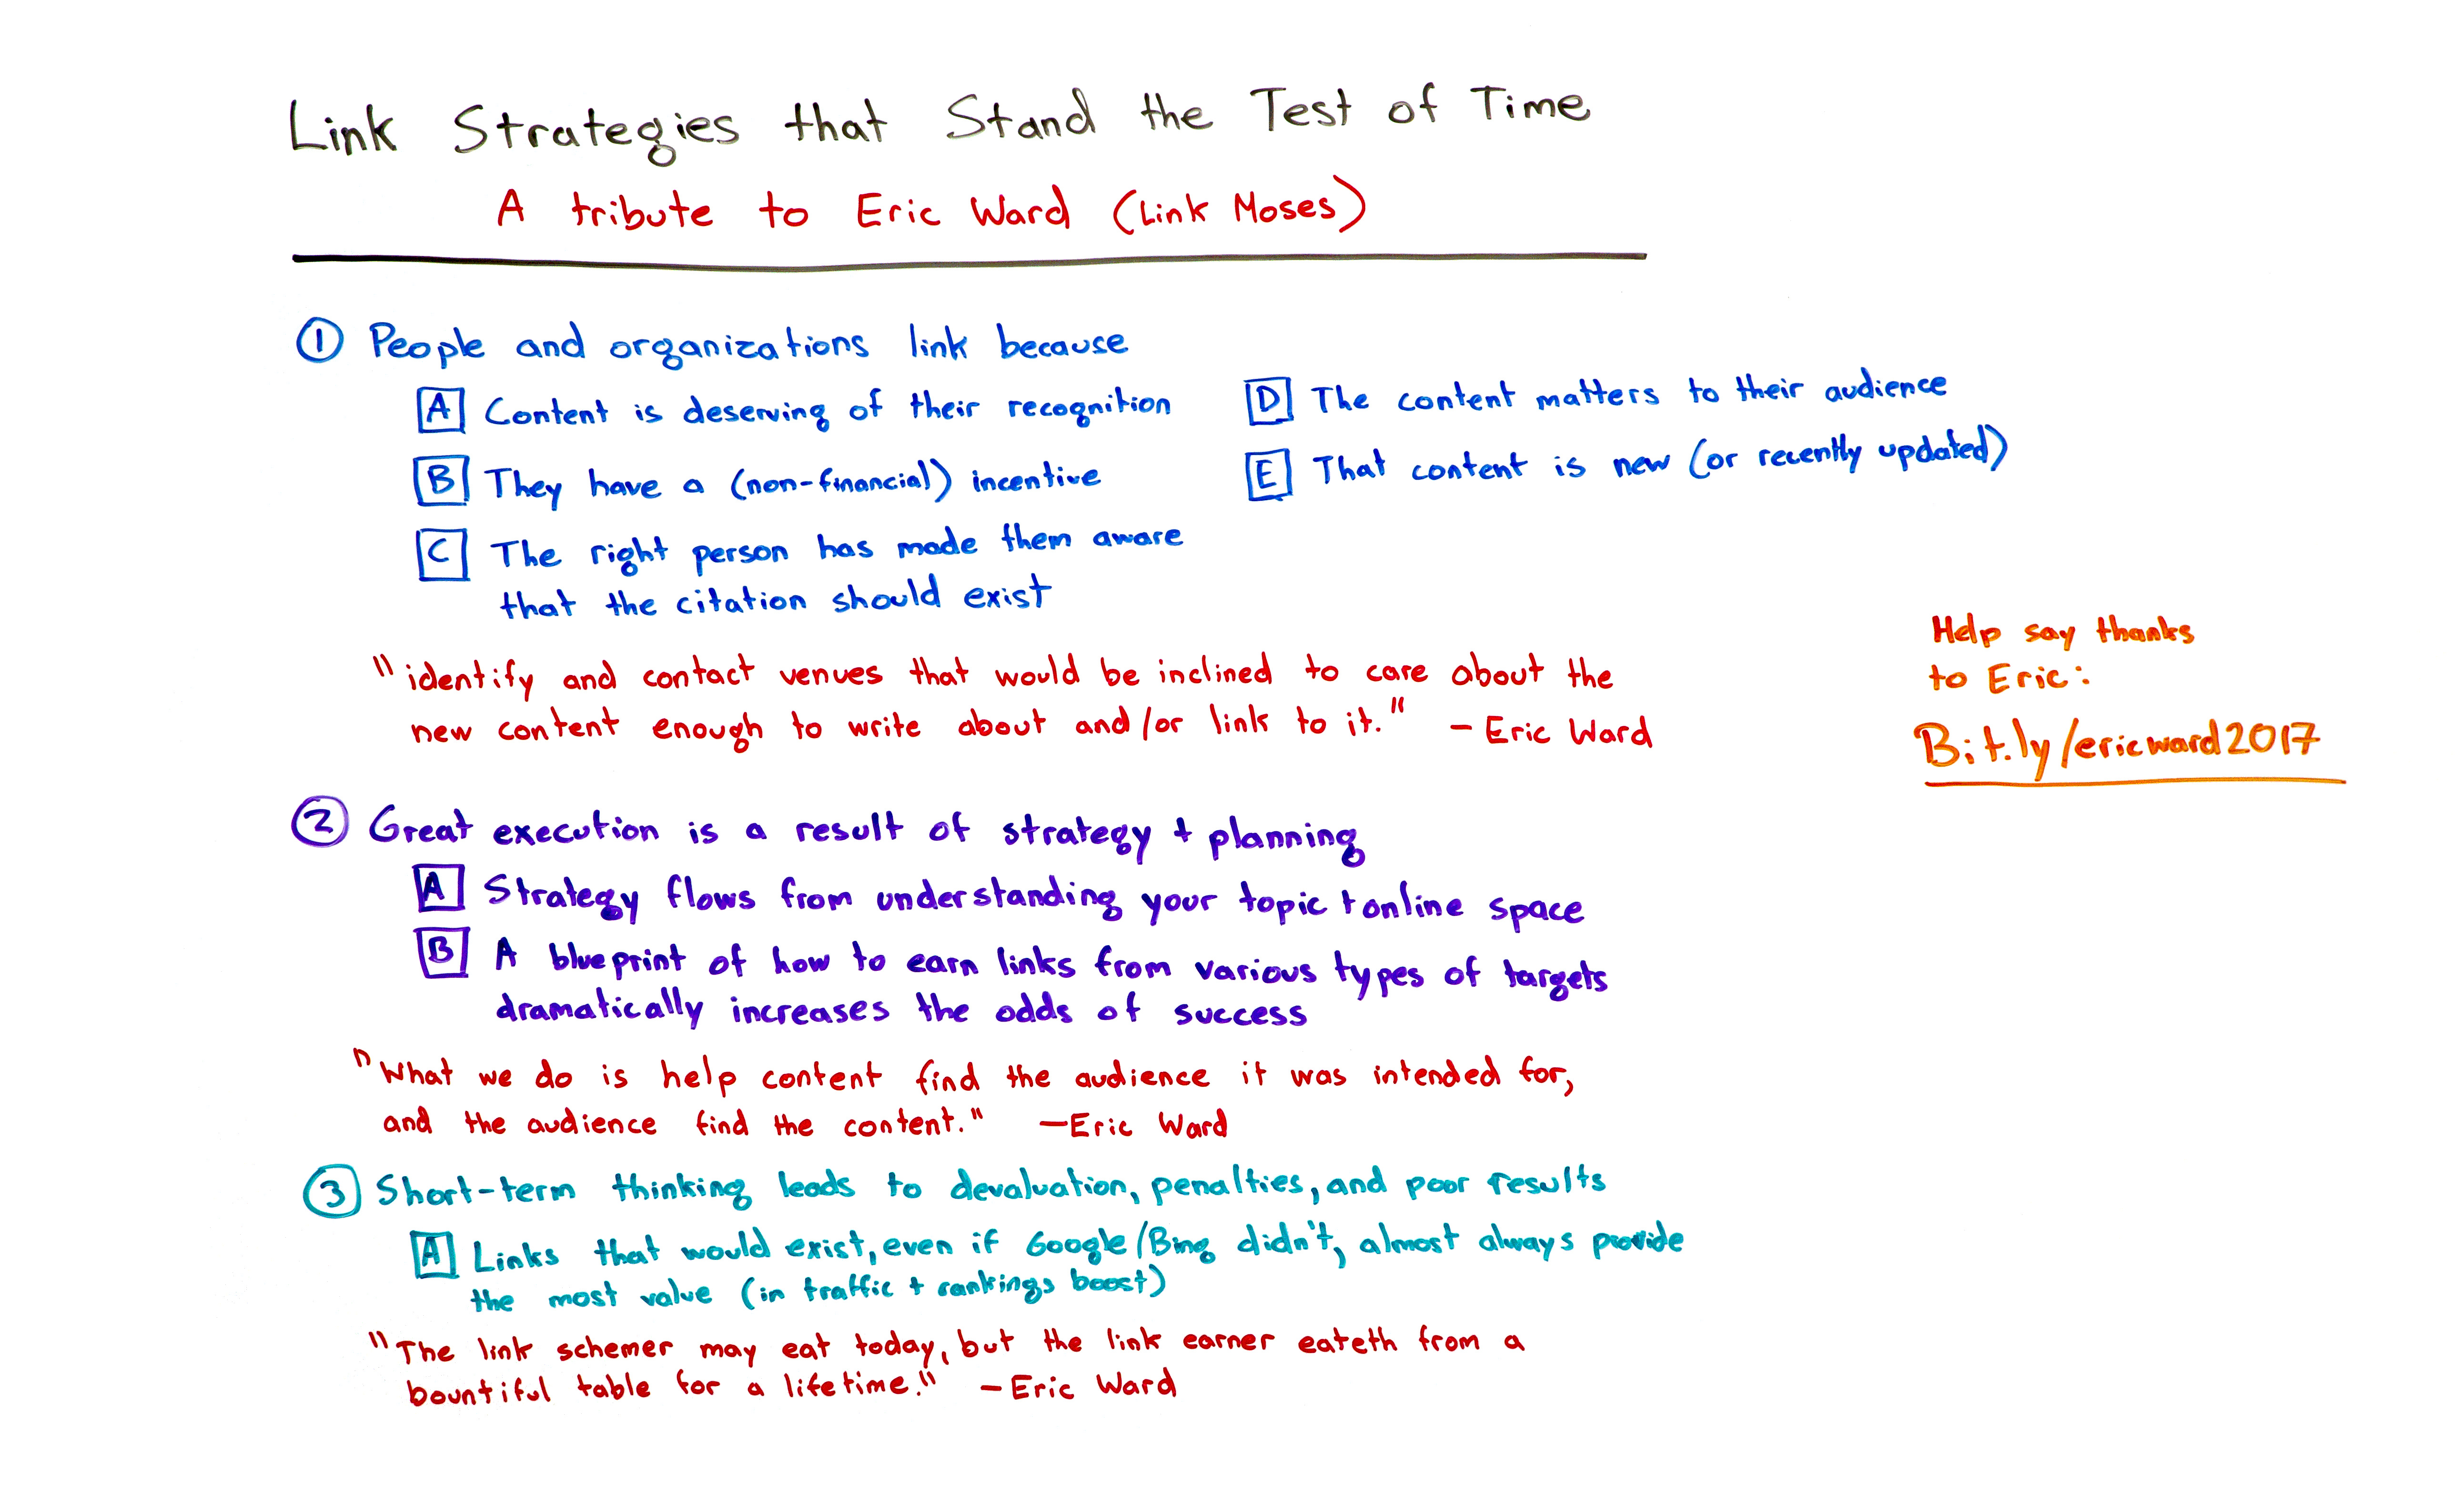 Link strategies that stand the test of time